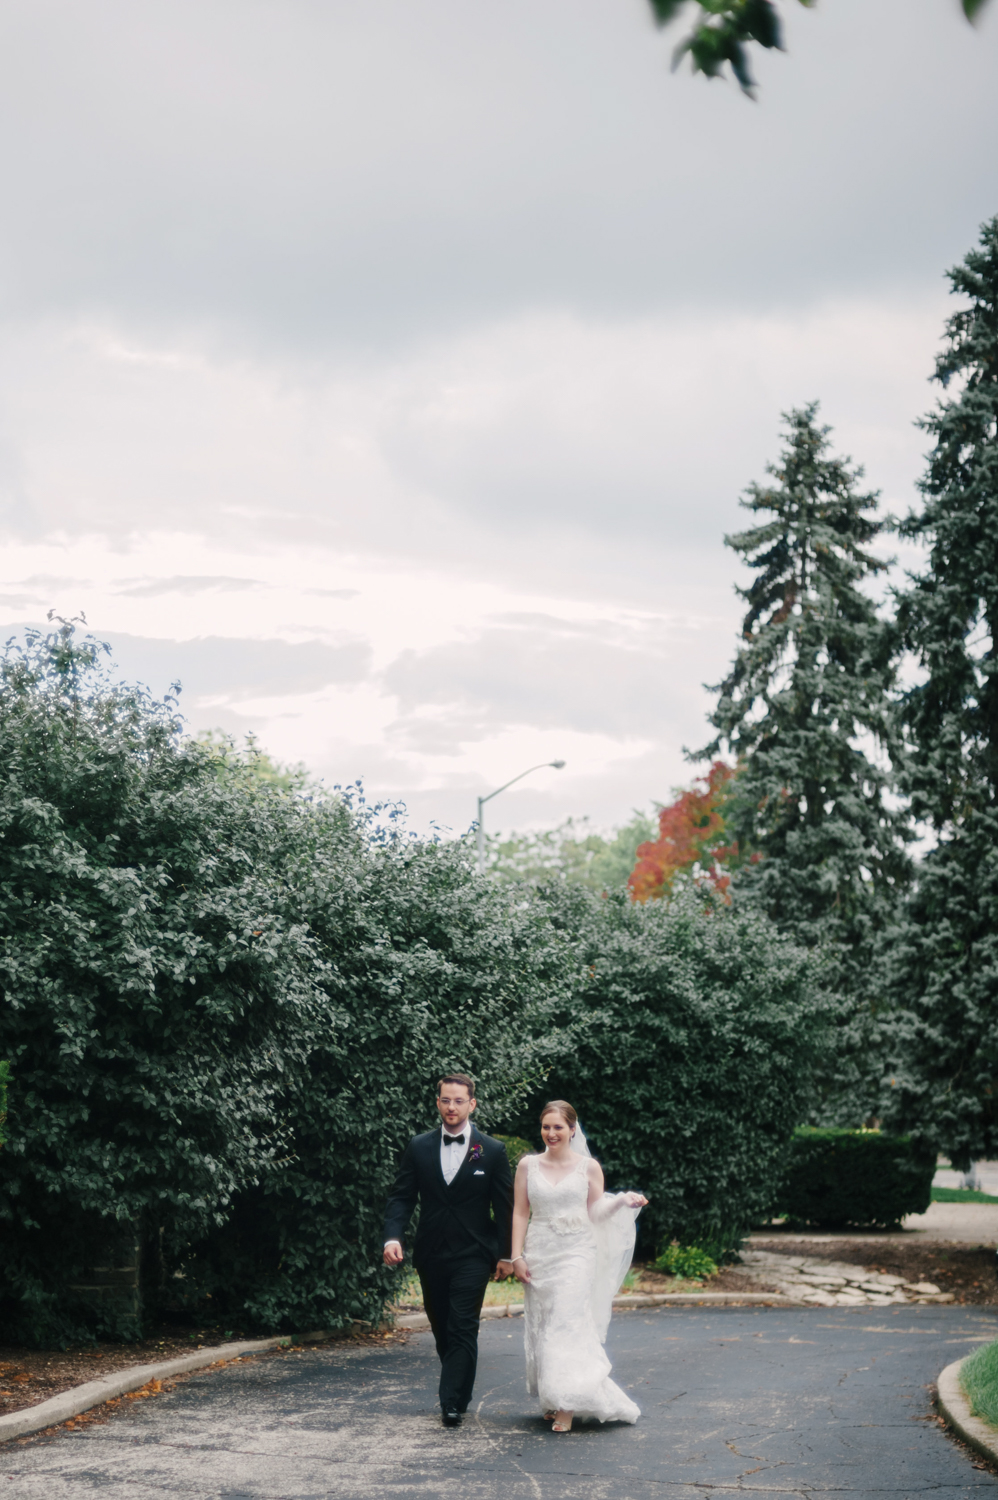 Wedding Photographer in Cincinnati, Ohio by Andrea Dozier